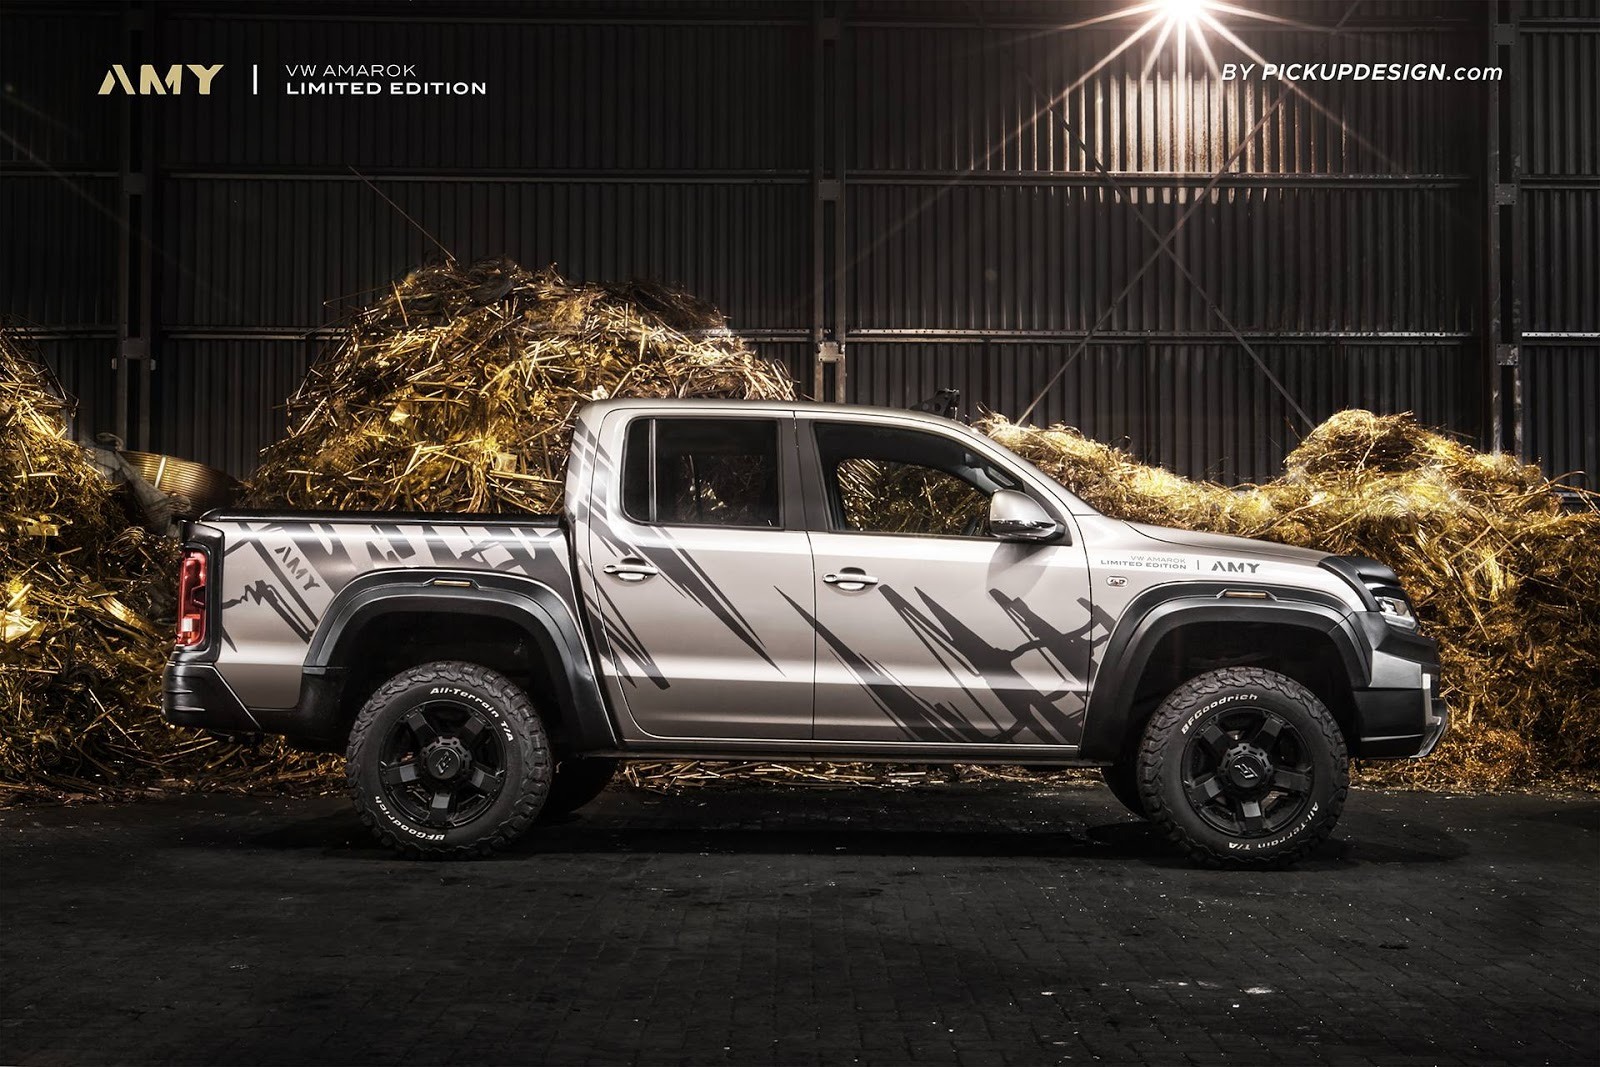 VW-Amarok-Pickup-Design-4